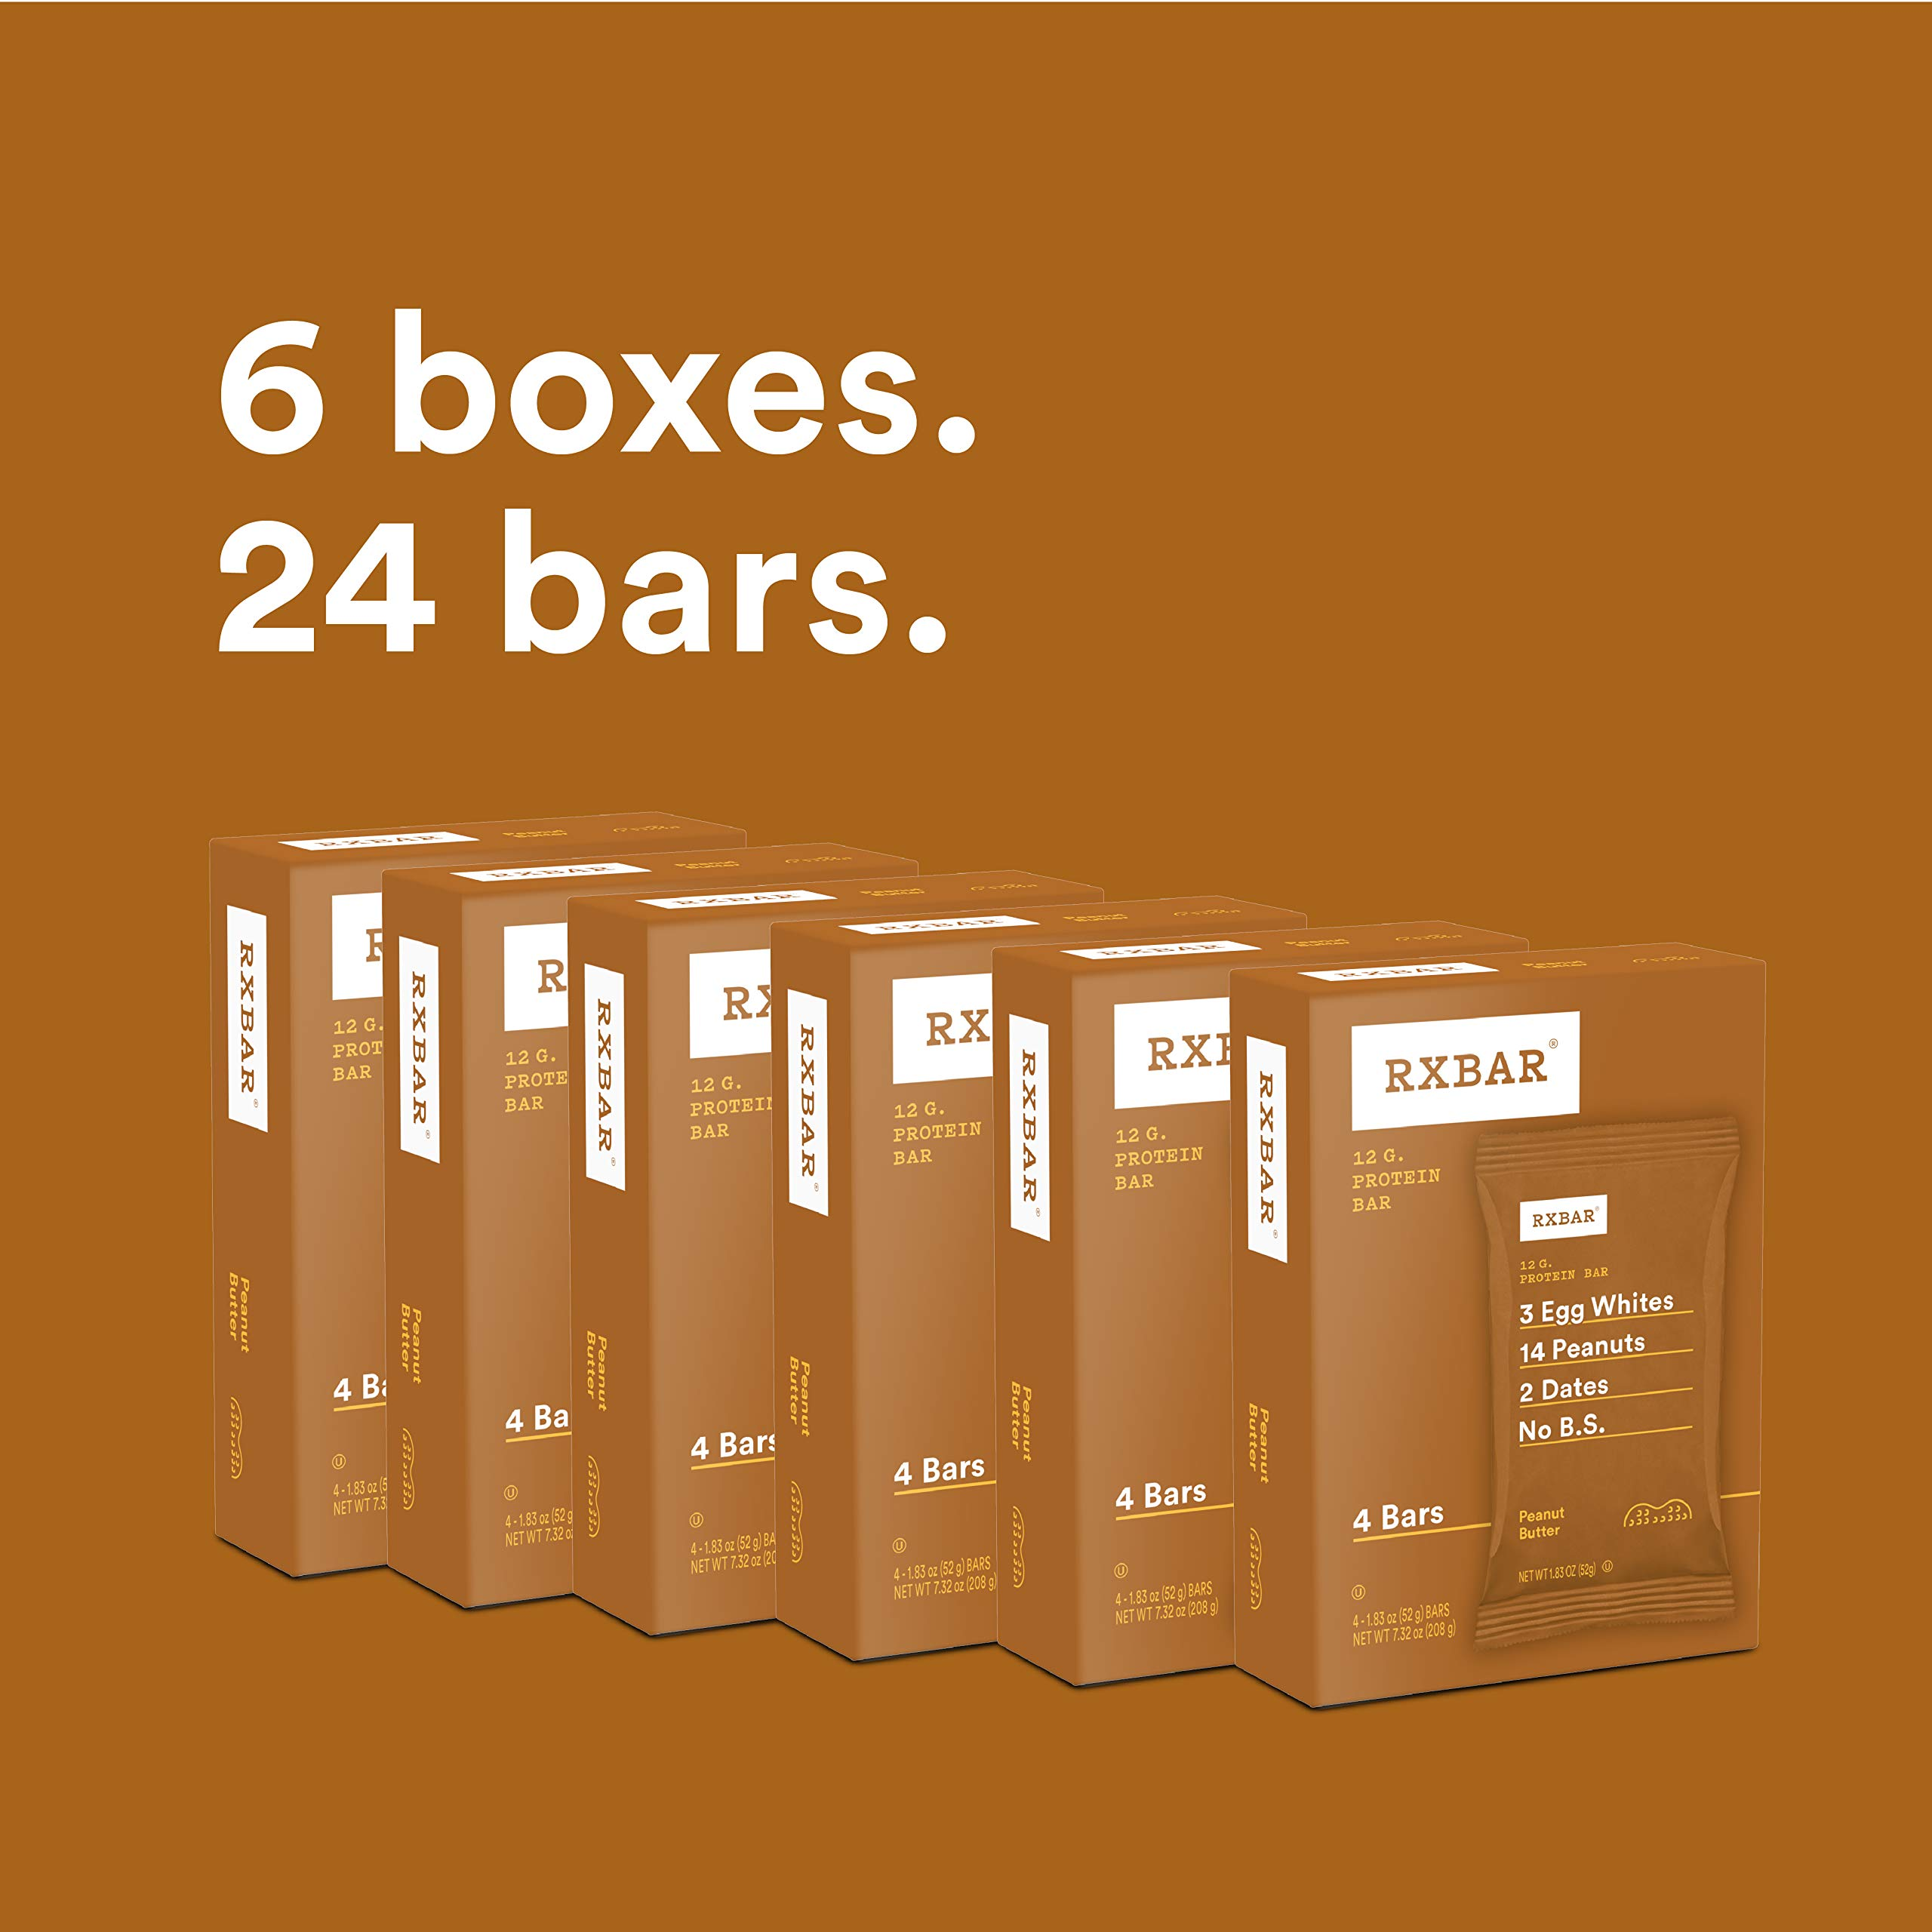 RXBAR Whole Food Protein Bar, Peanut Butter, 1.83 Ounce (Pack of 24) by RXBAR (Image #2)